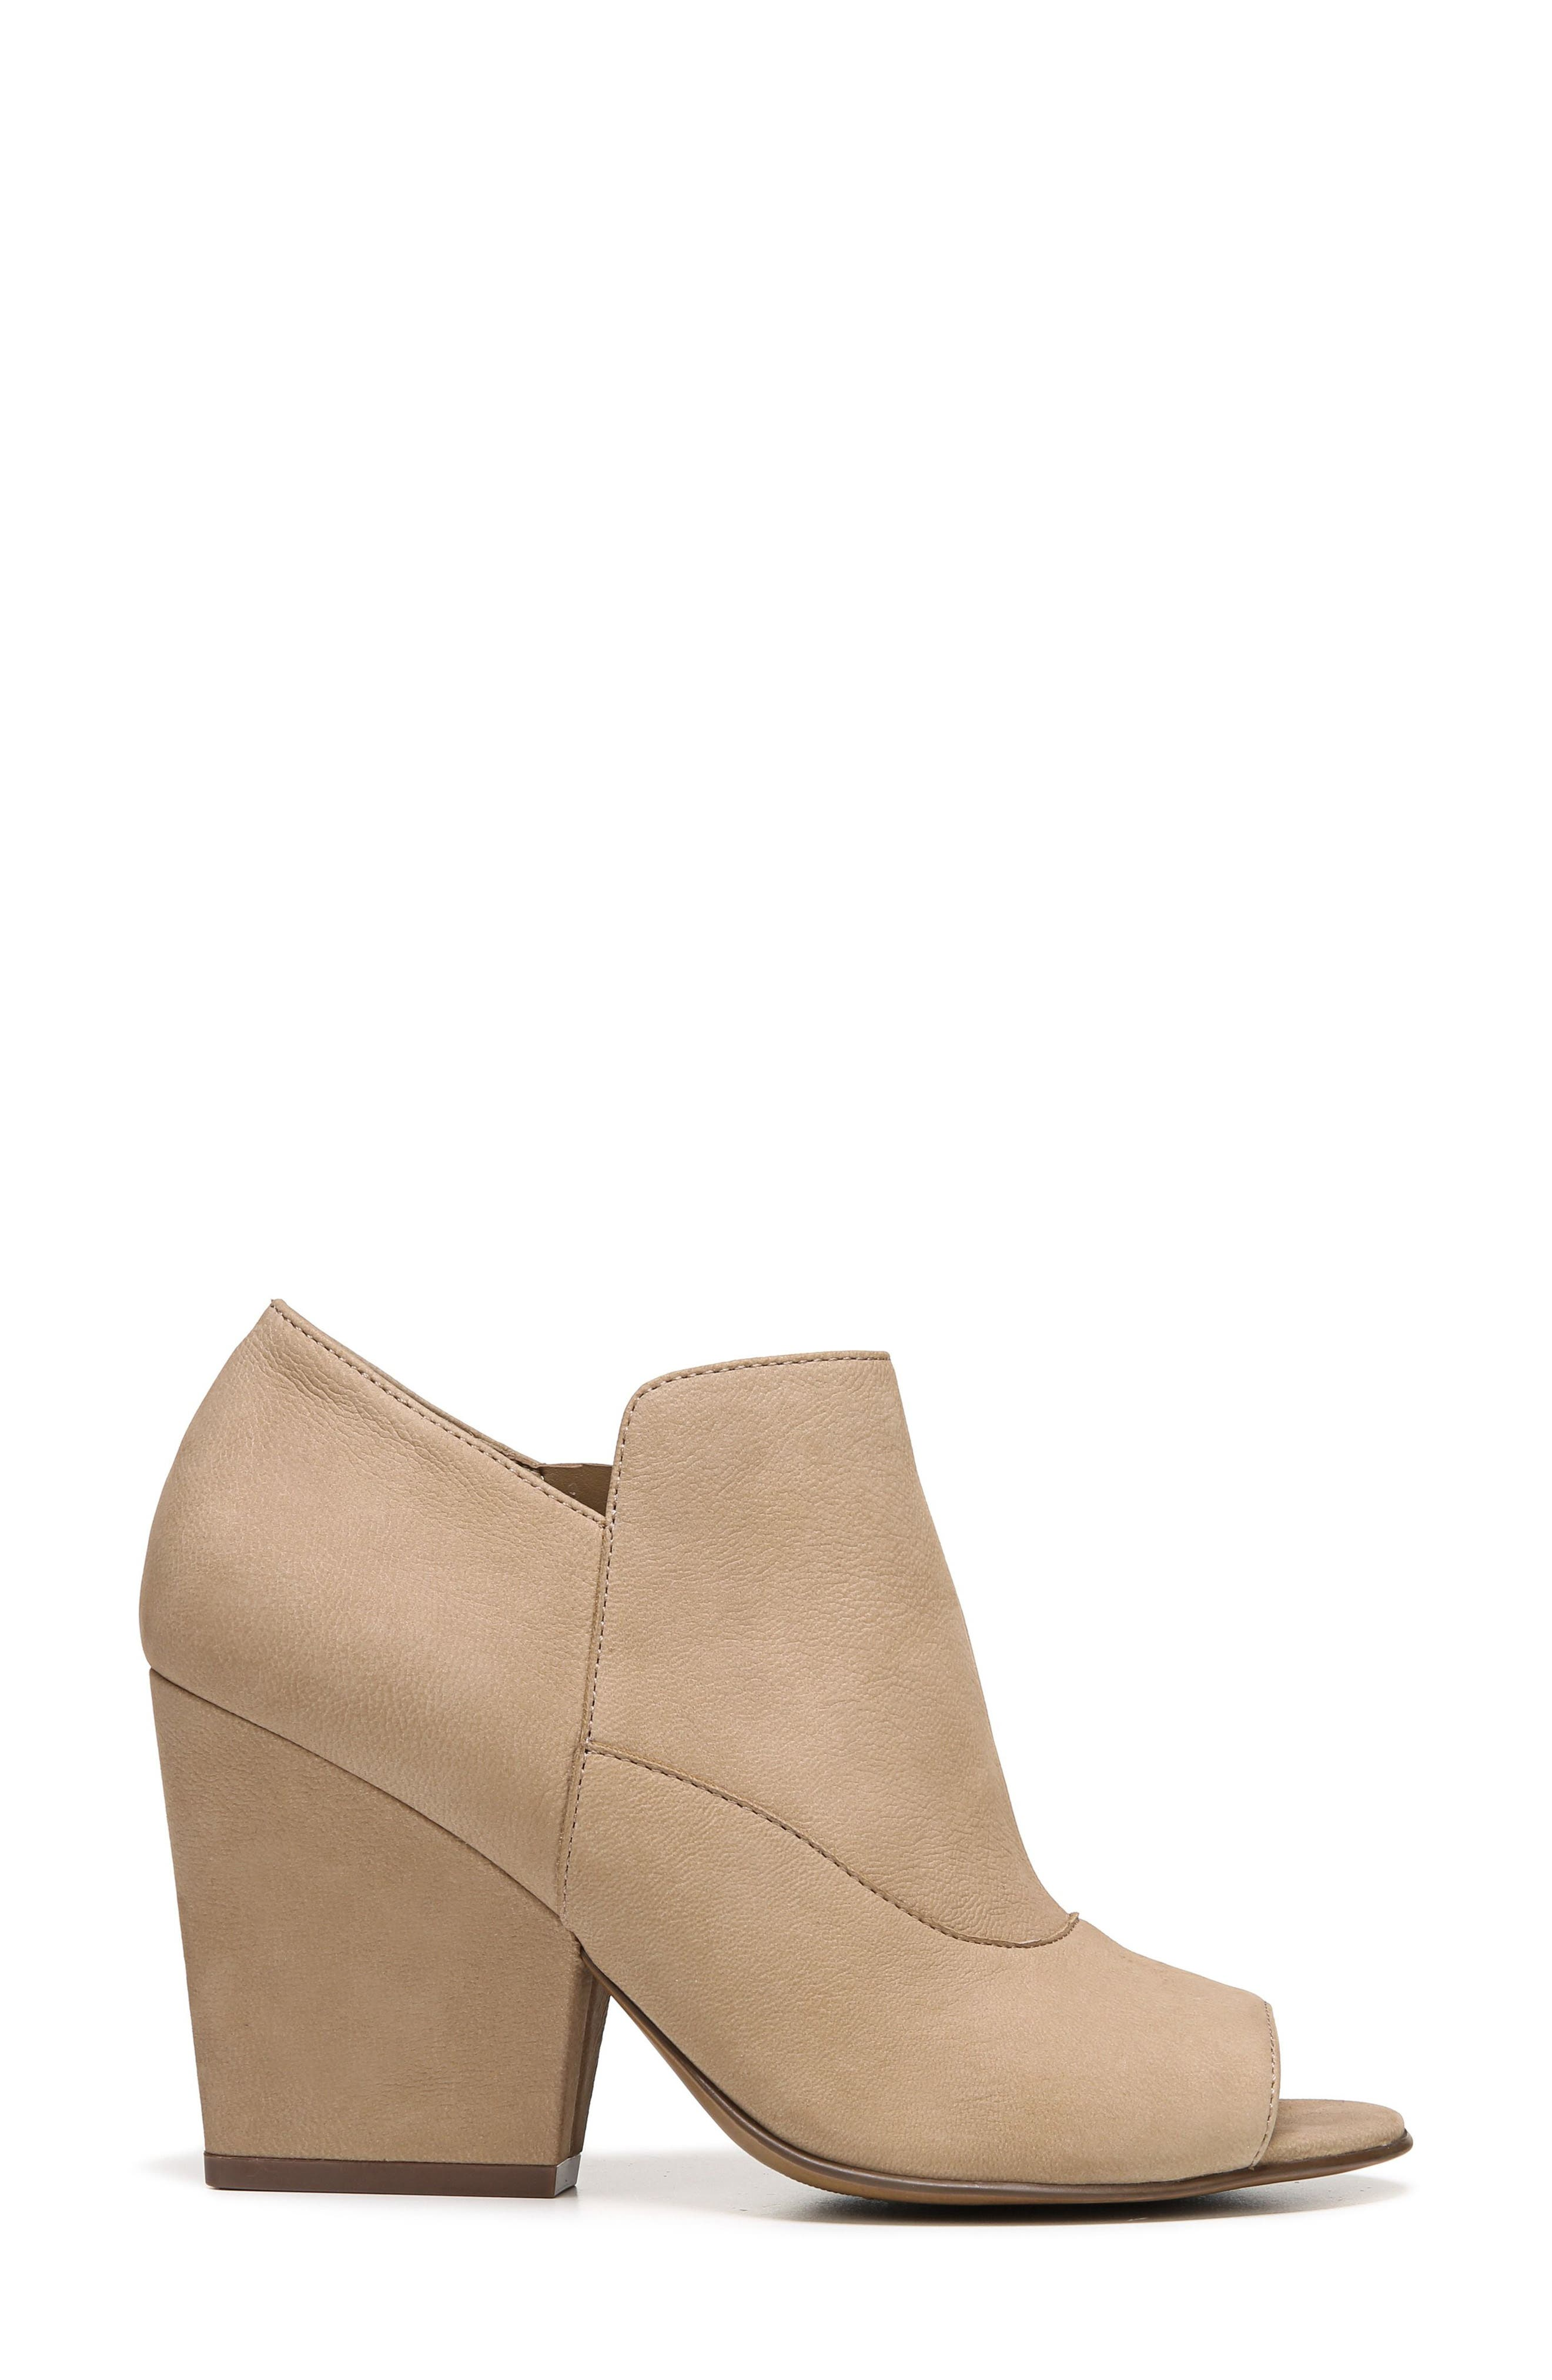 Skylar Open Toe Bootie,                             Alternate thumbnail 3, color,                             Barley Nubuck